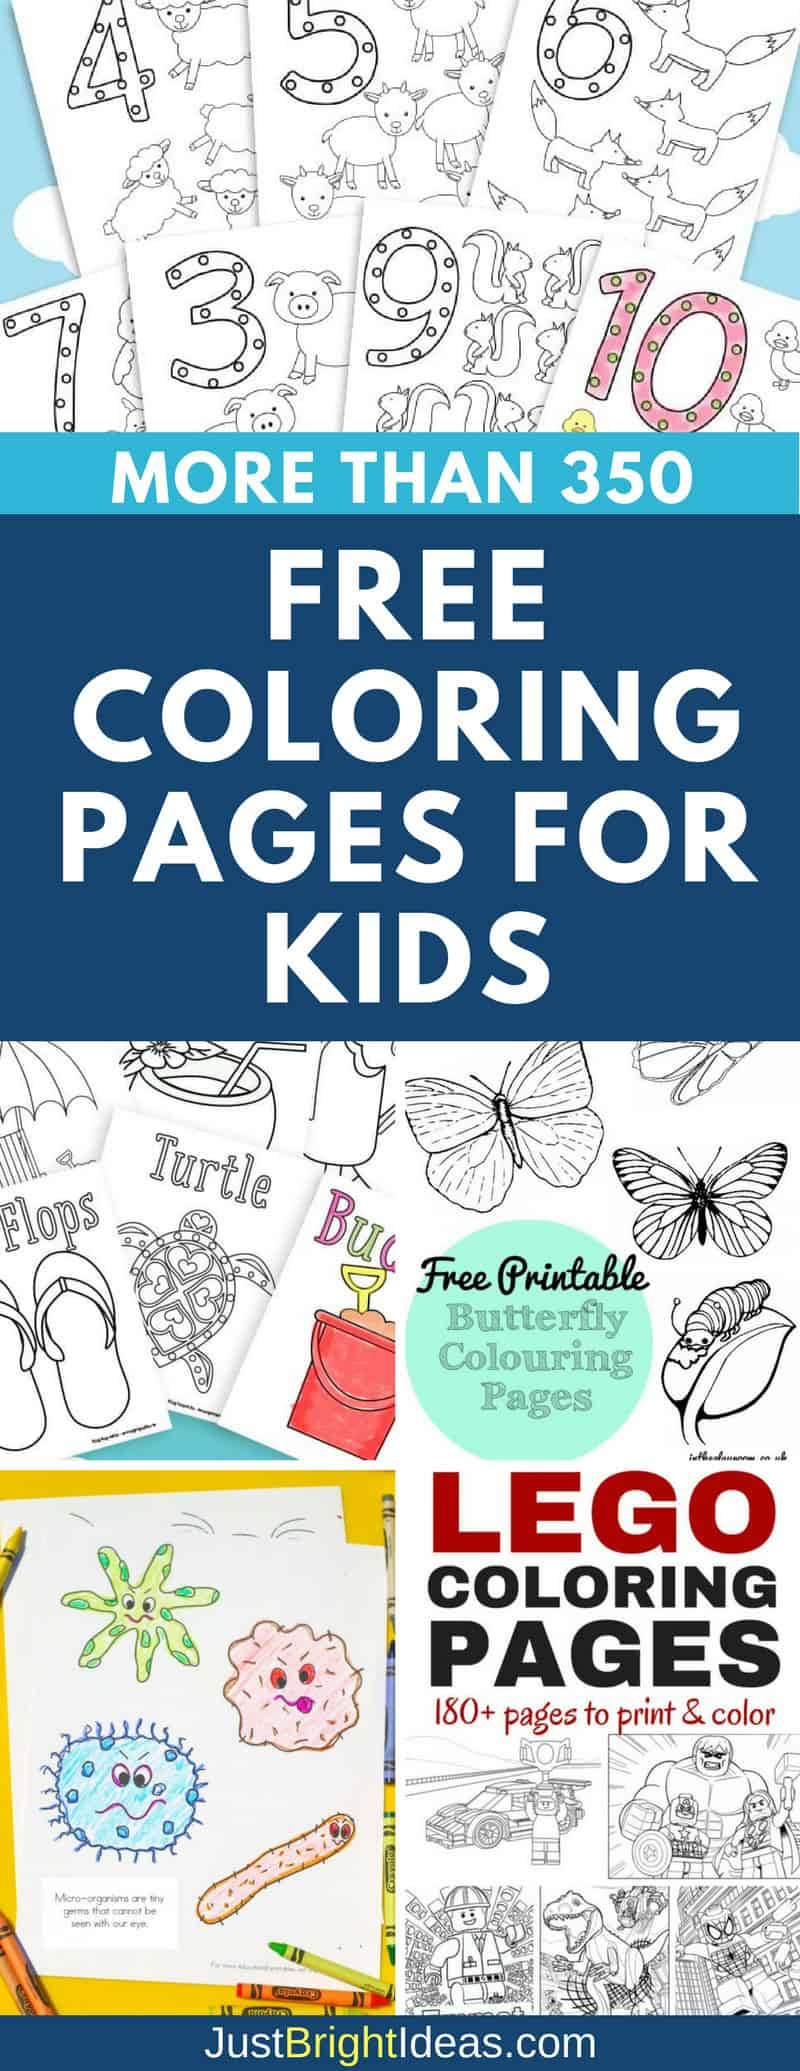 Free Colouring Pages for Kids - Pinterest